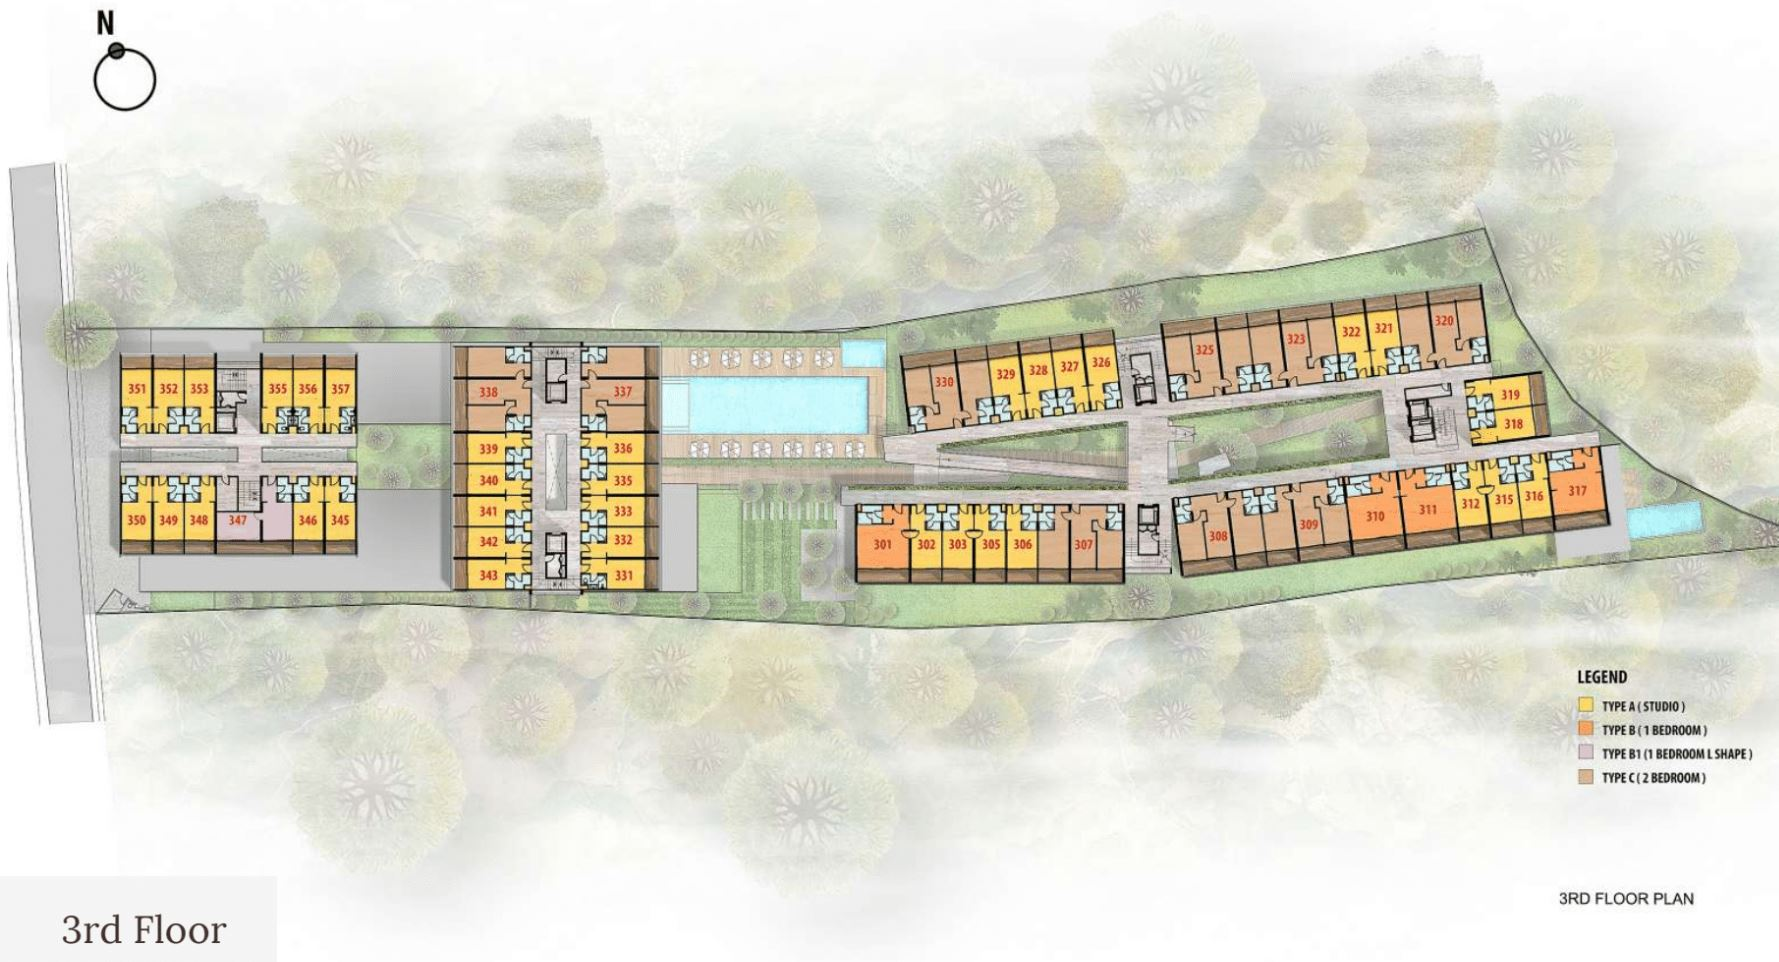 Citadines Berawa Beach Bali Site Plan 3rd Floor